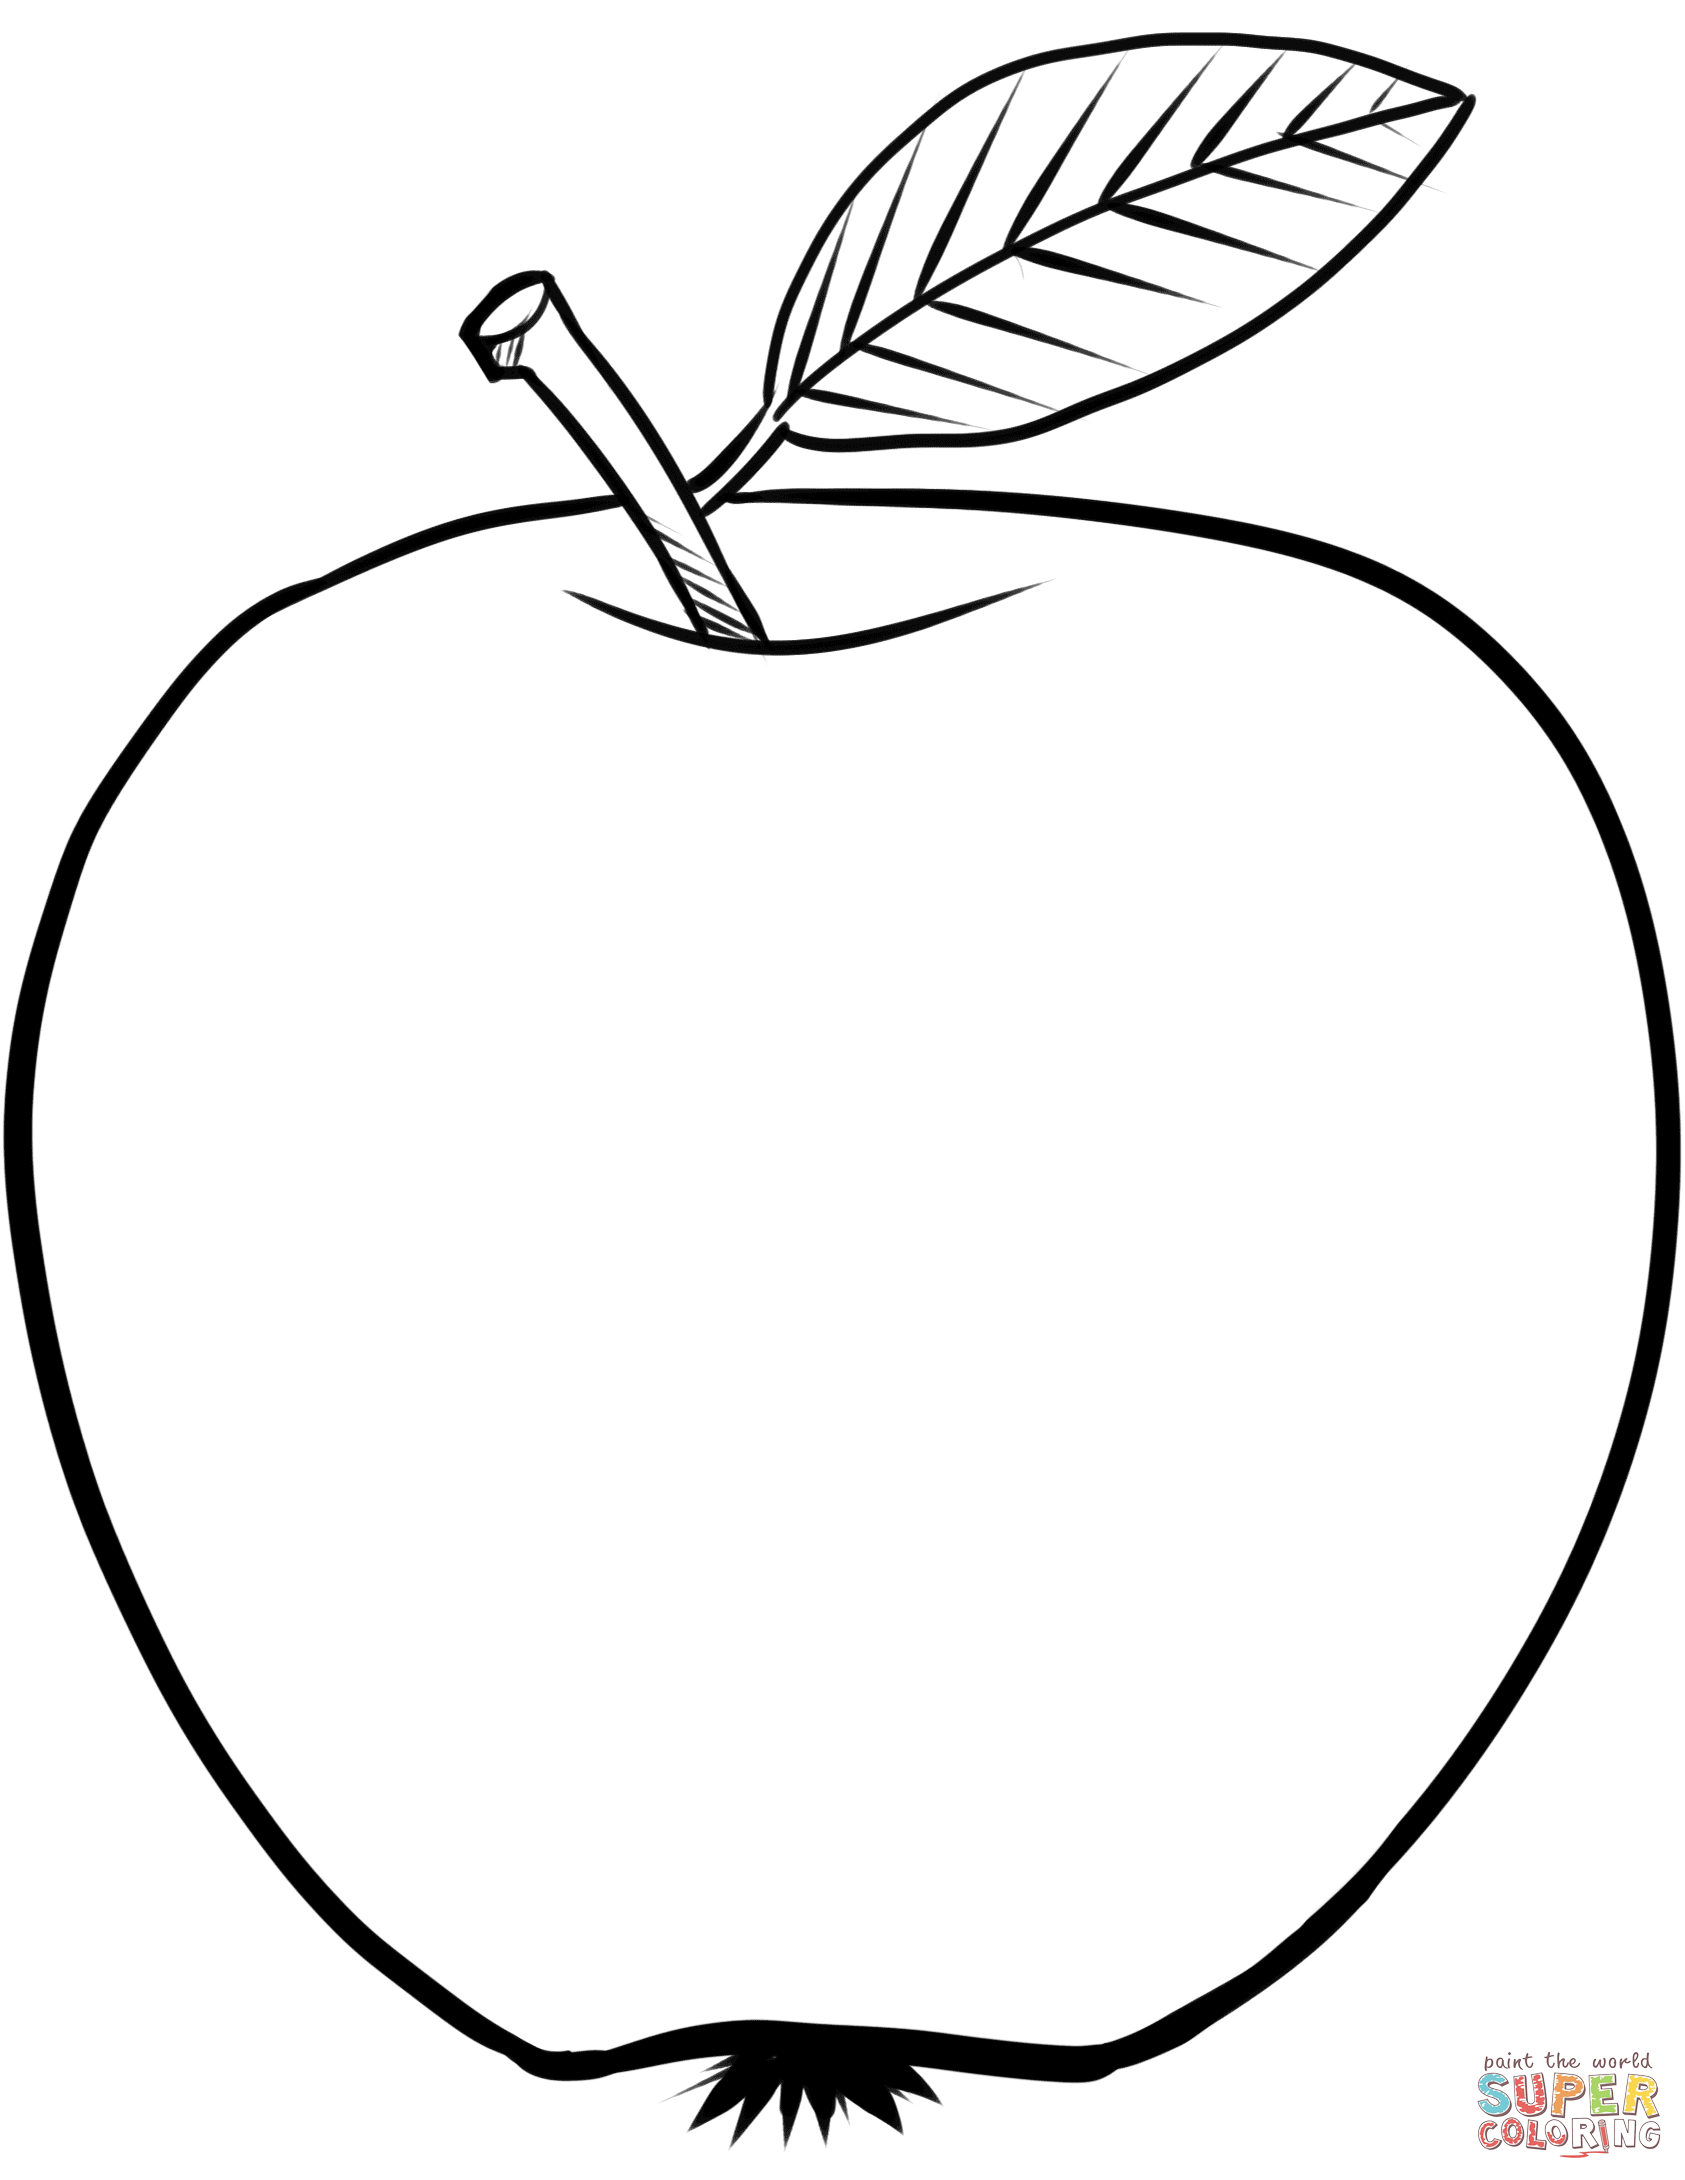 1685x2180 Apple Coloring Page Free Printable Pages